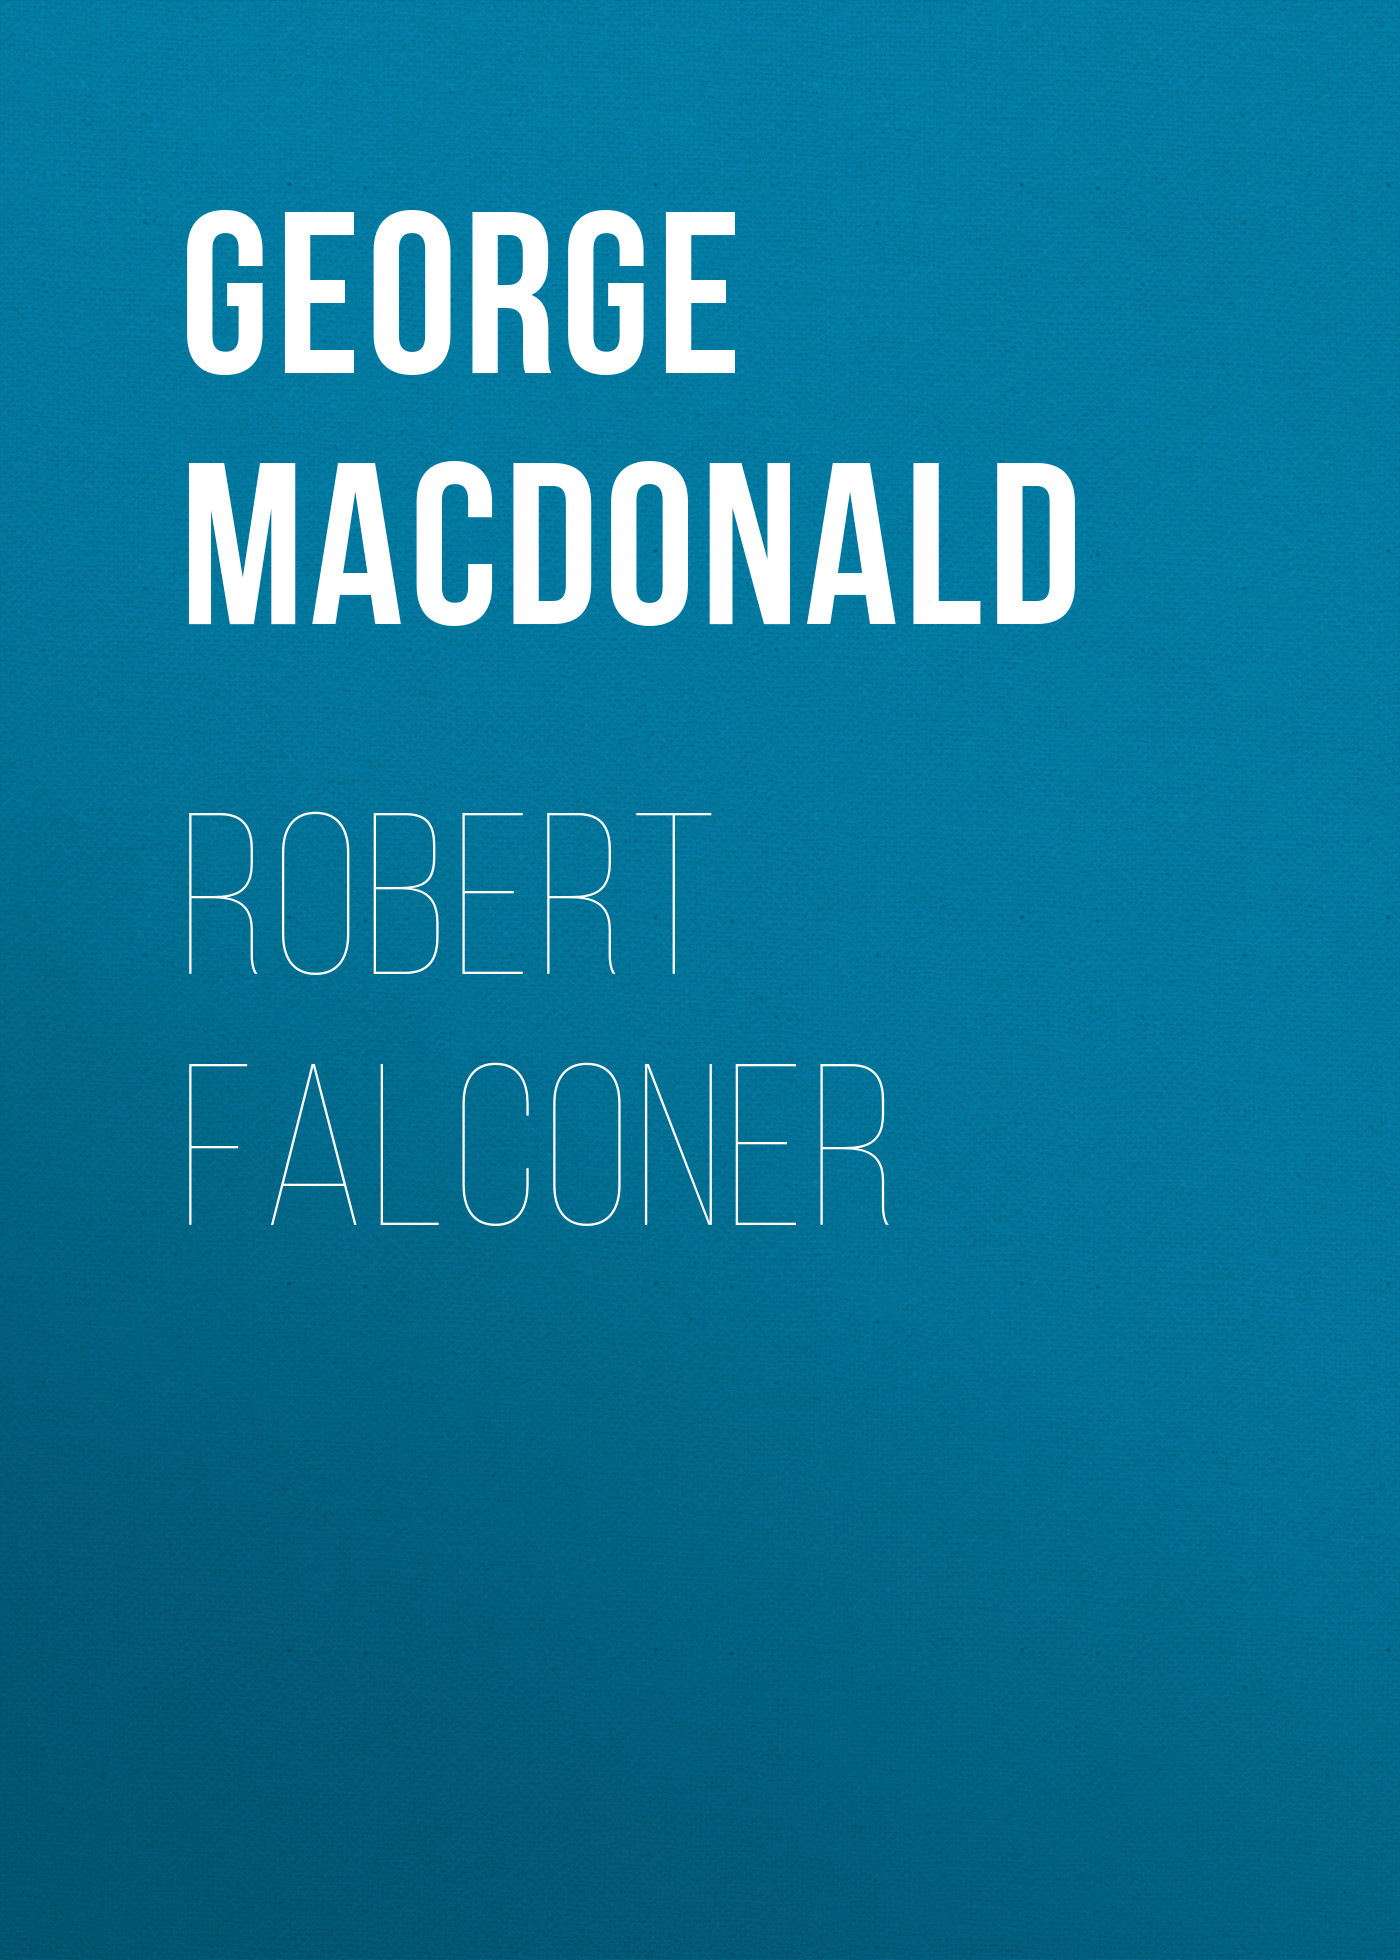 все цены на George MacDonald Robert Falconer онлайн